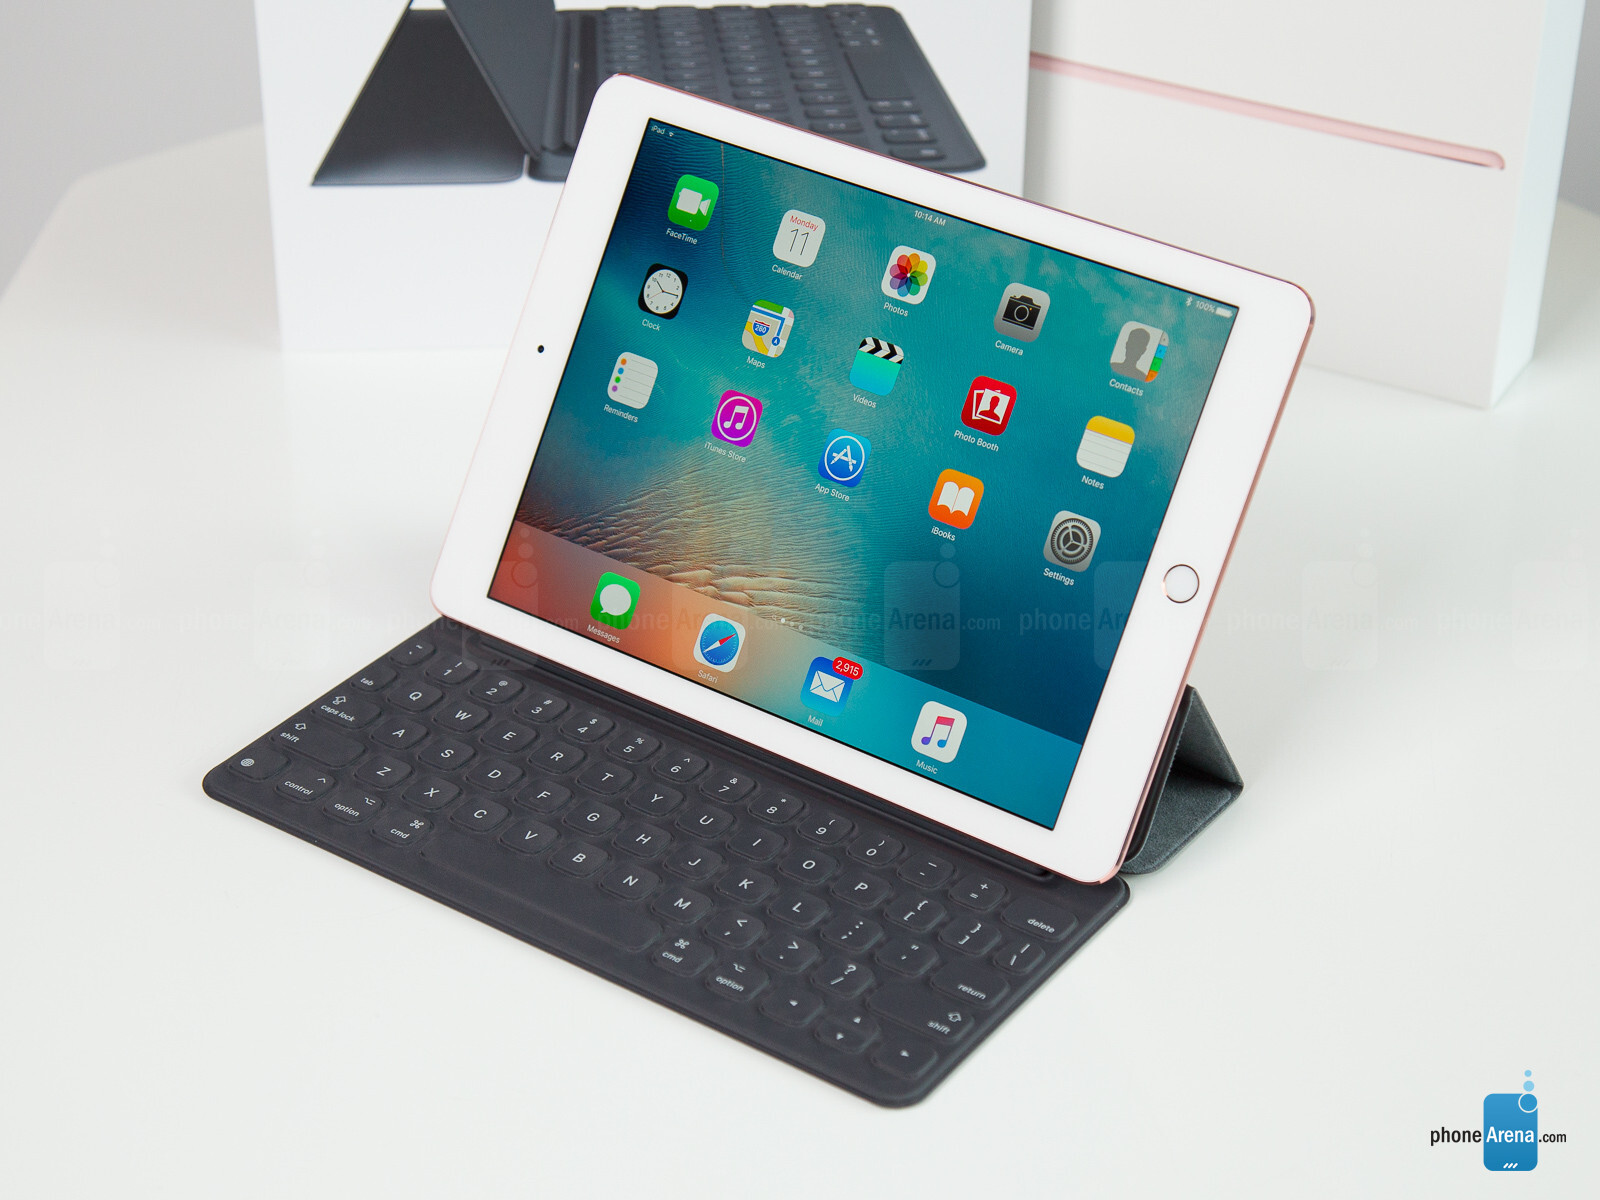 flash deal 9 7 inch apple ipad pro selling at 200 off. Black Bedroom Furniture Sets. Home Design Ideas